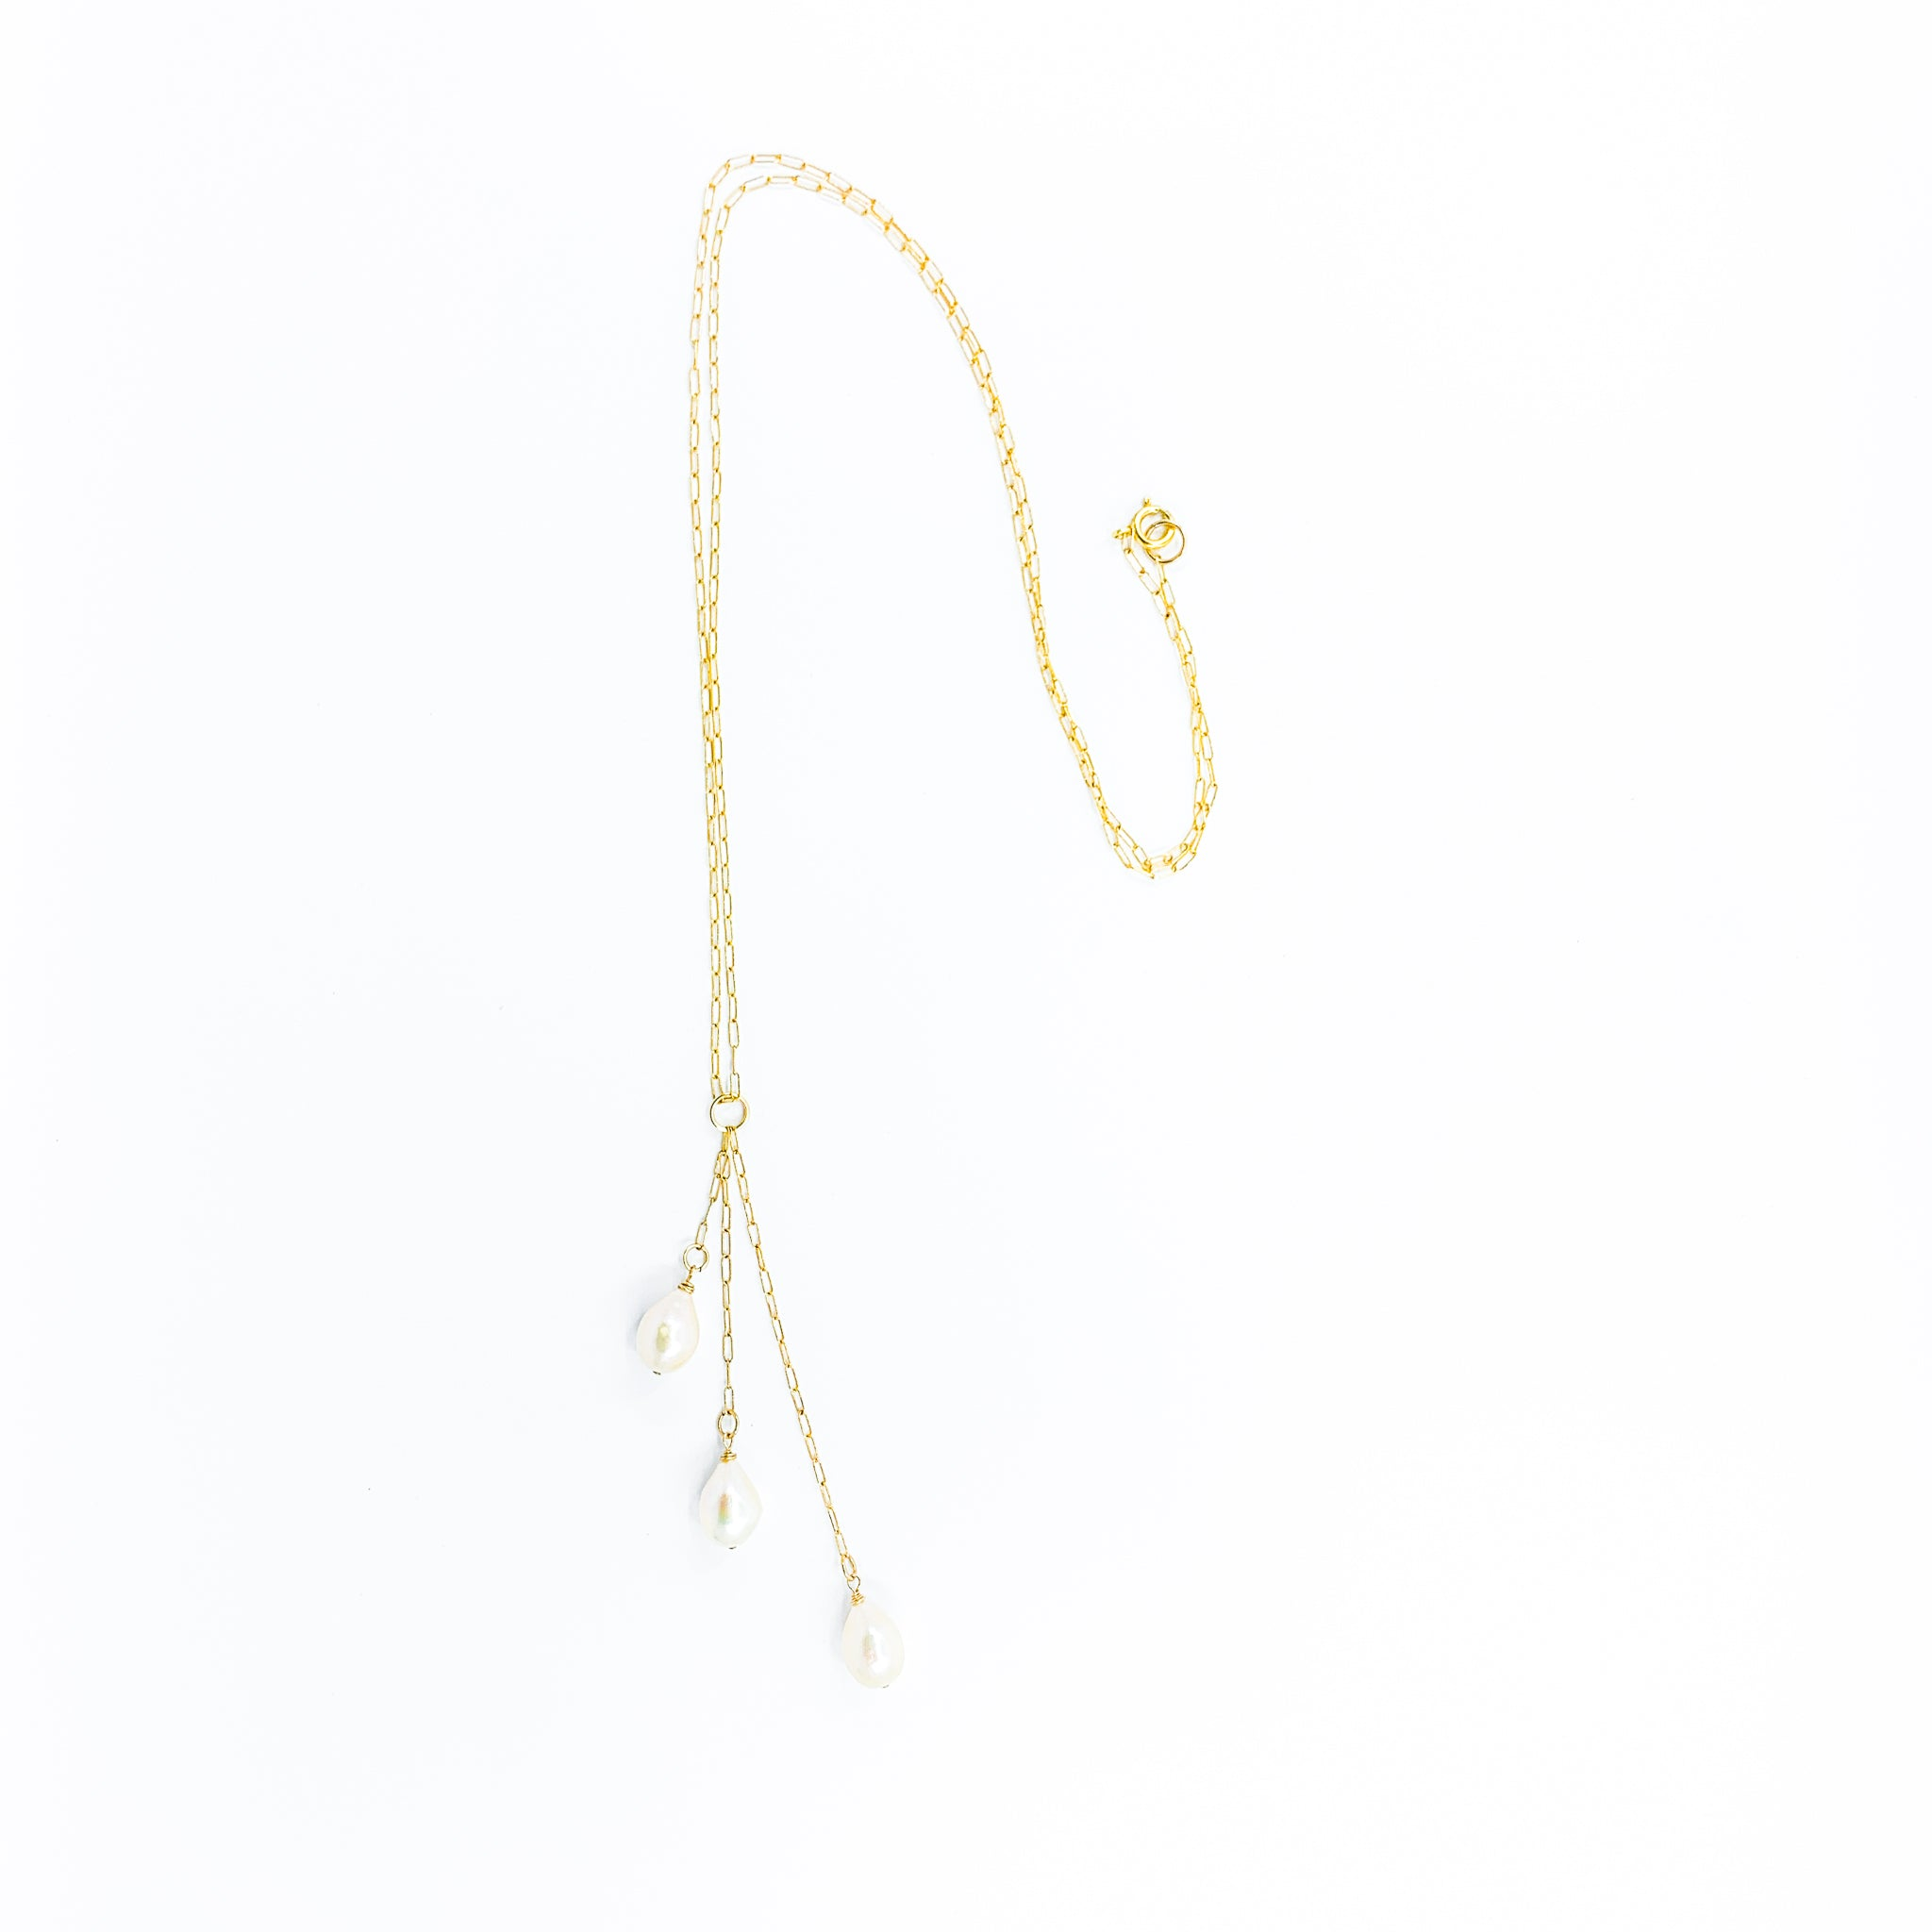 waterfall style gold necklace with 3 white pearls by eve black jewelry made in Hawaii  Edit alt text